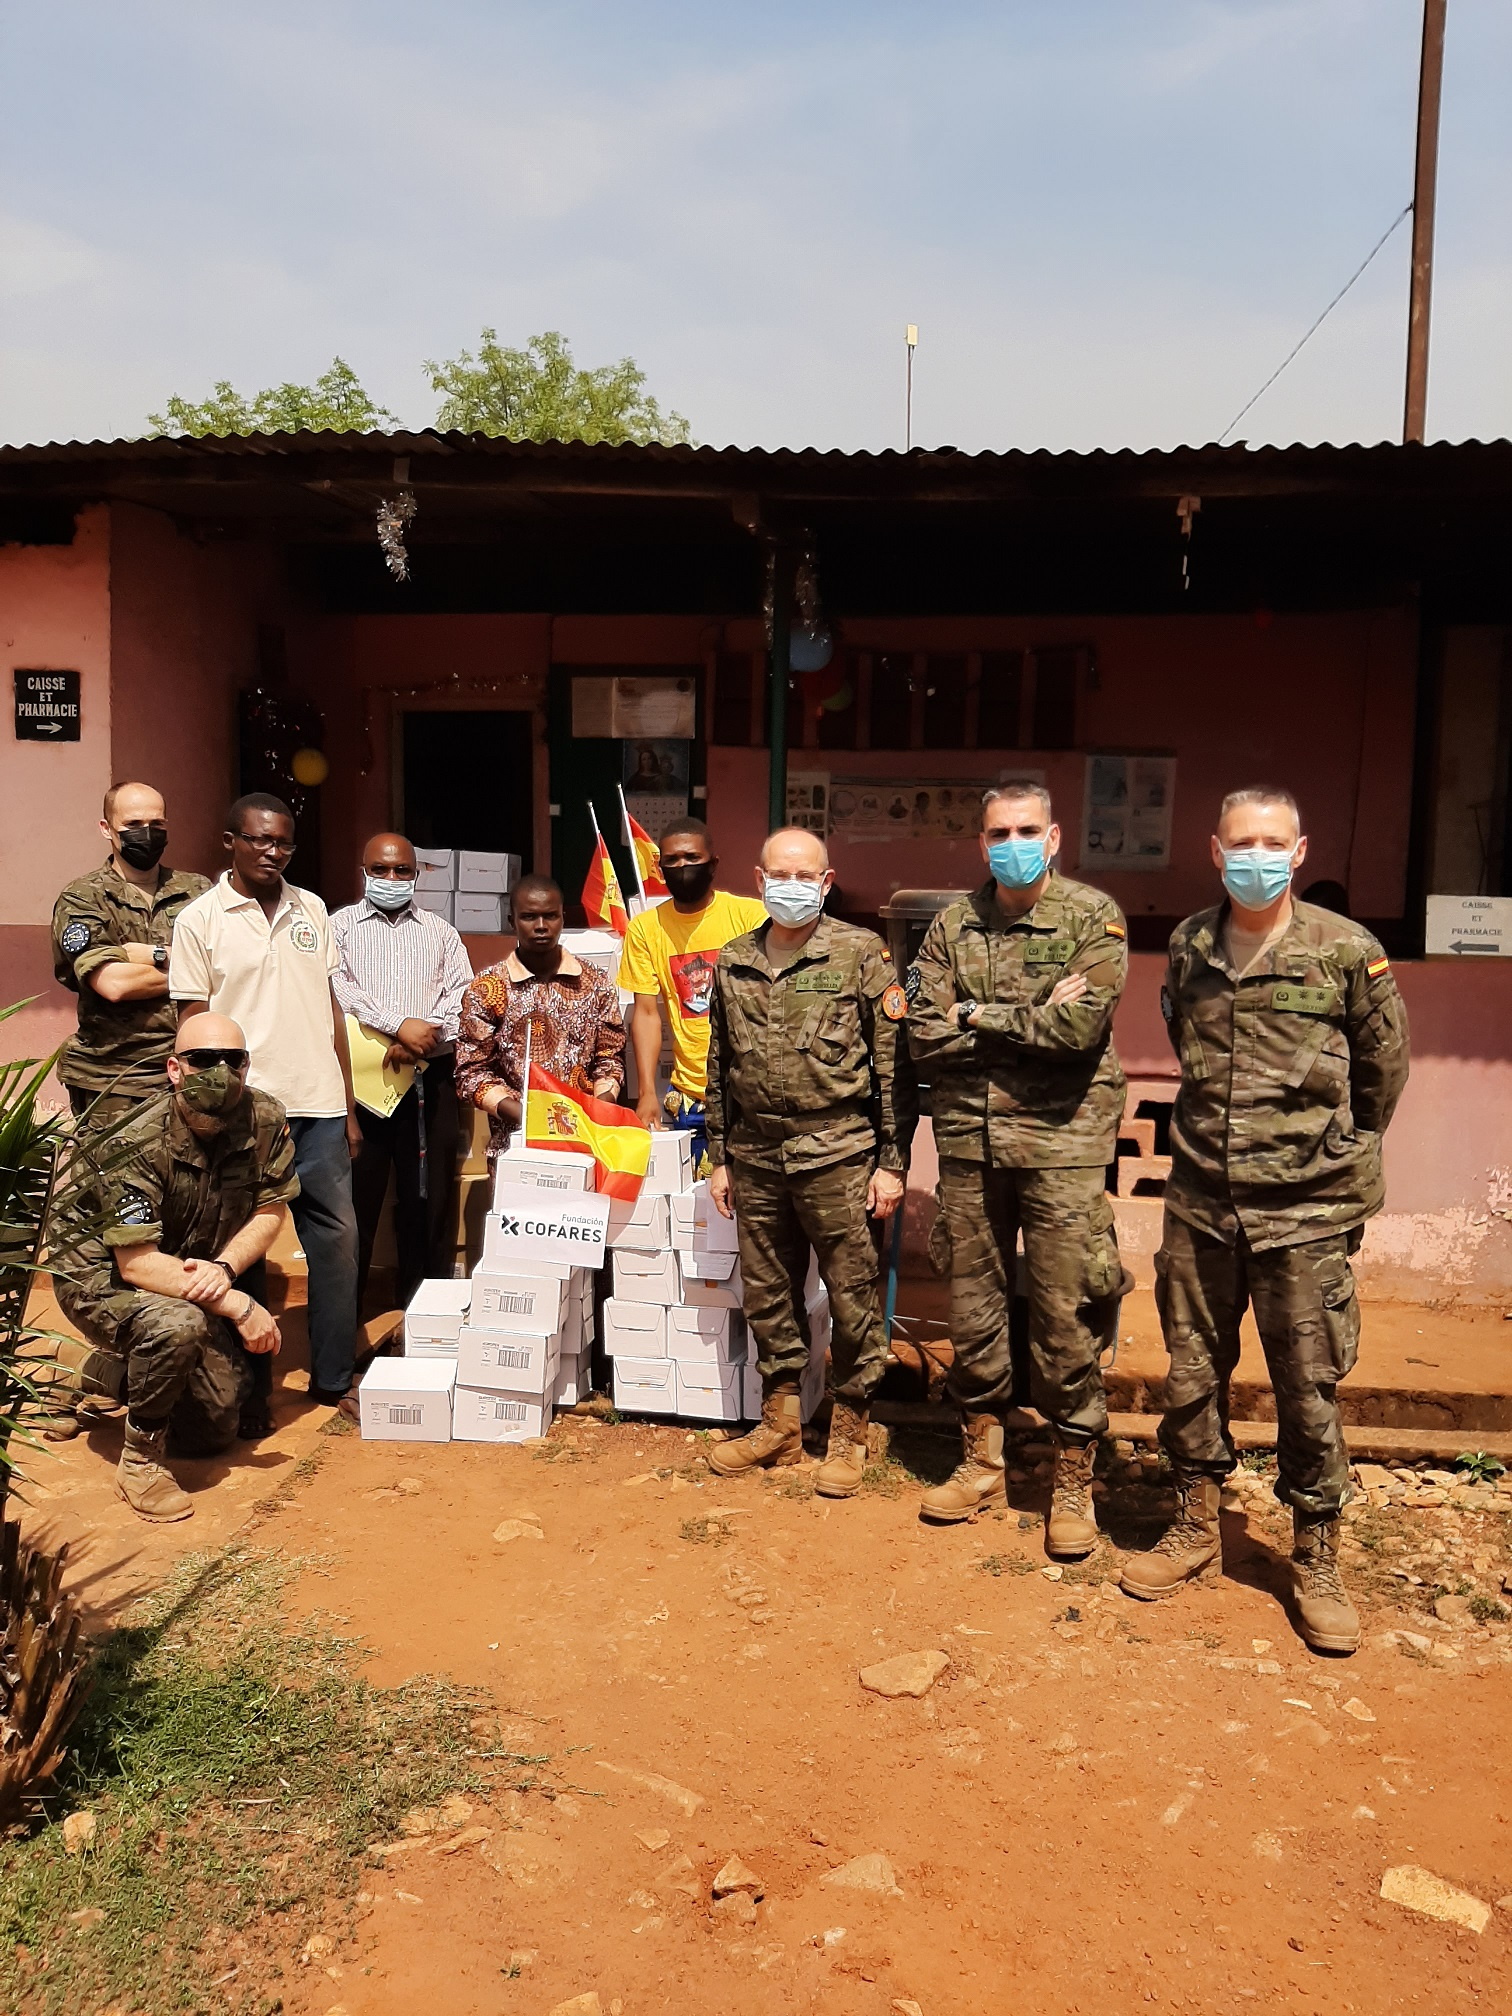 Spanish troops distribute medicines donated by 'COFARES foundation'